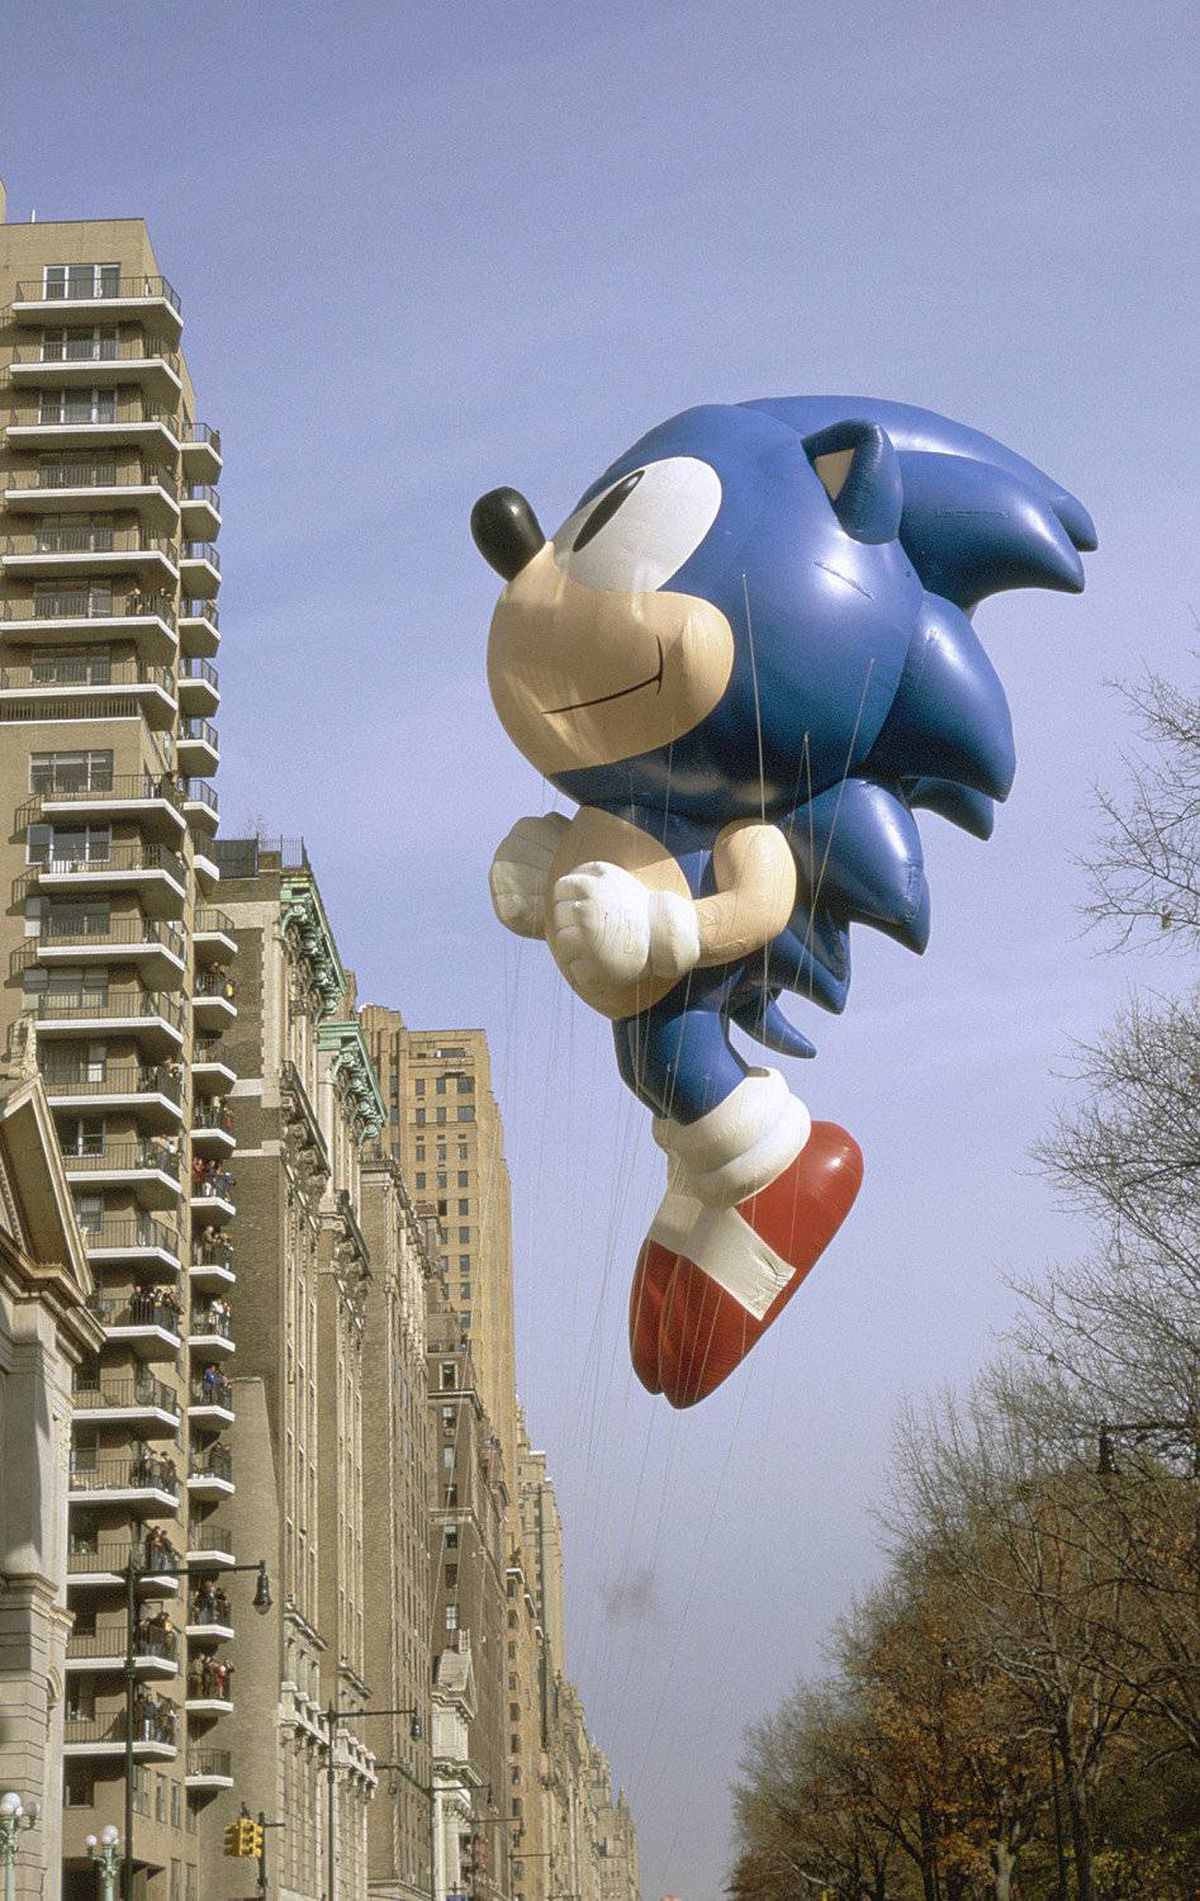 Ah, Sonic the Hedgehog. Remember when video games were that simple? Year: 1996